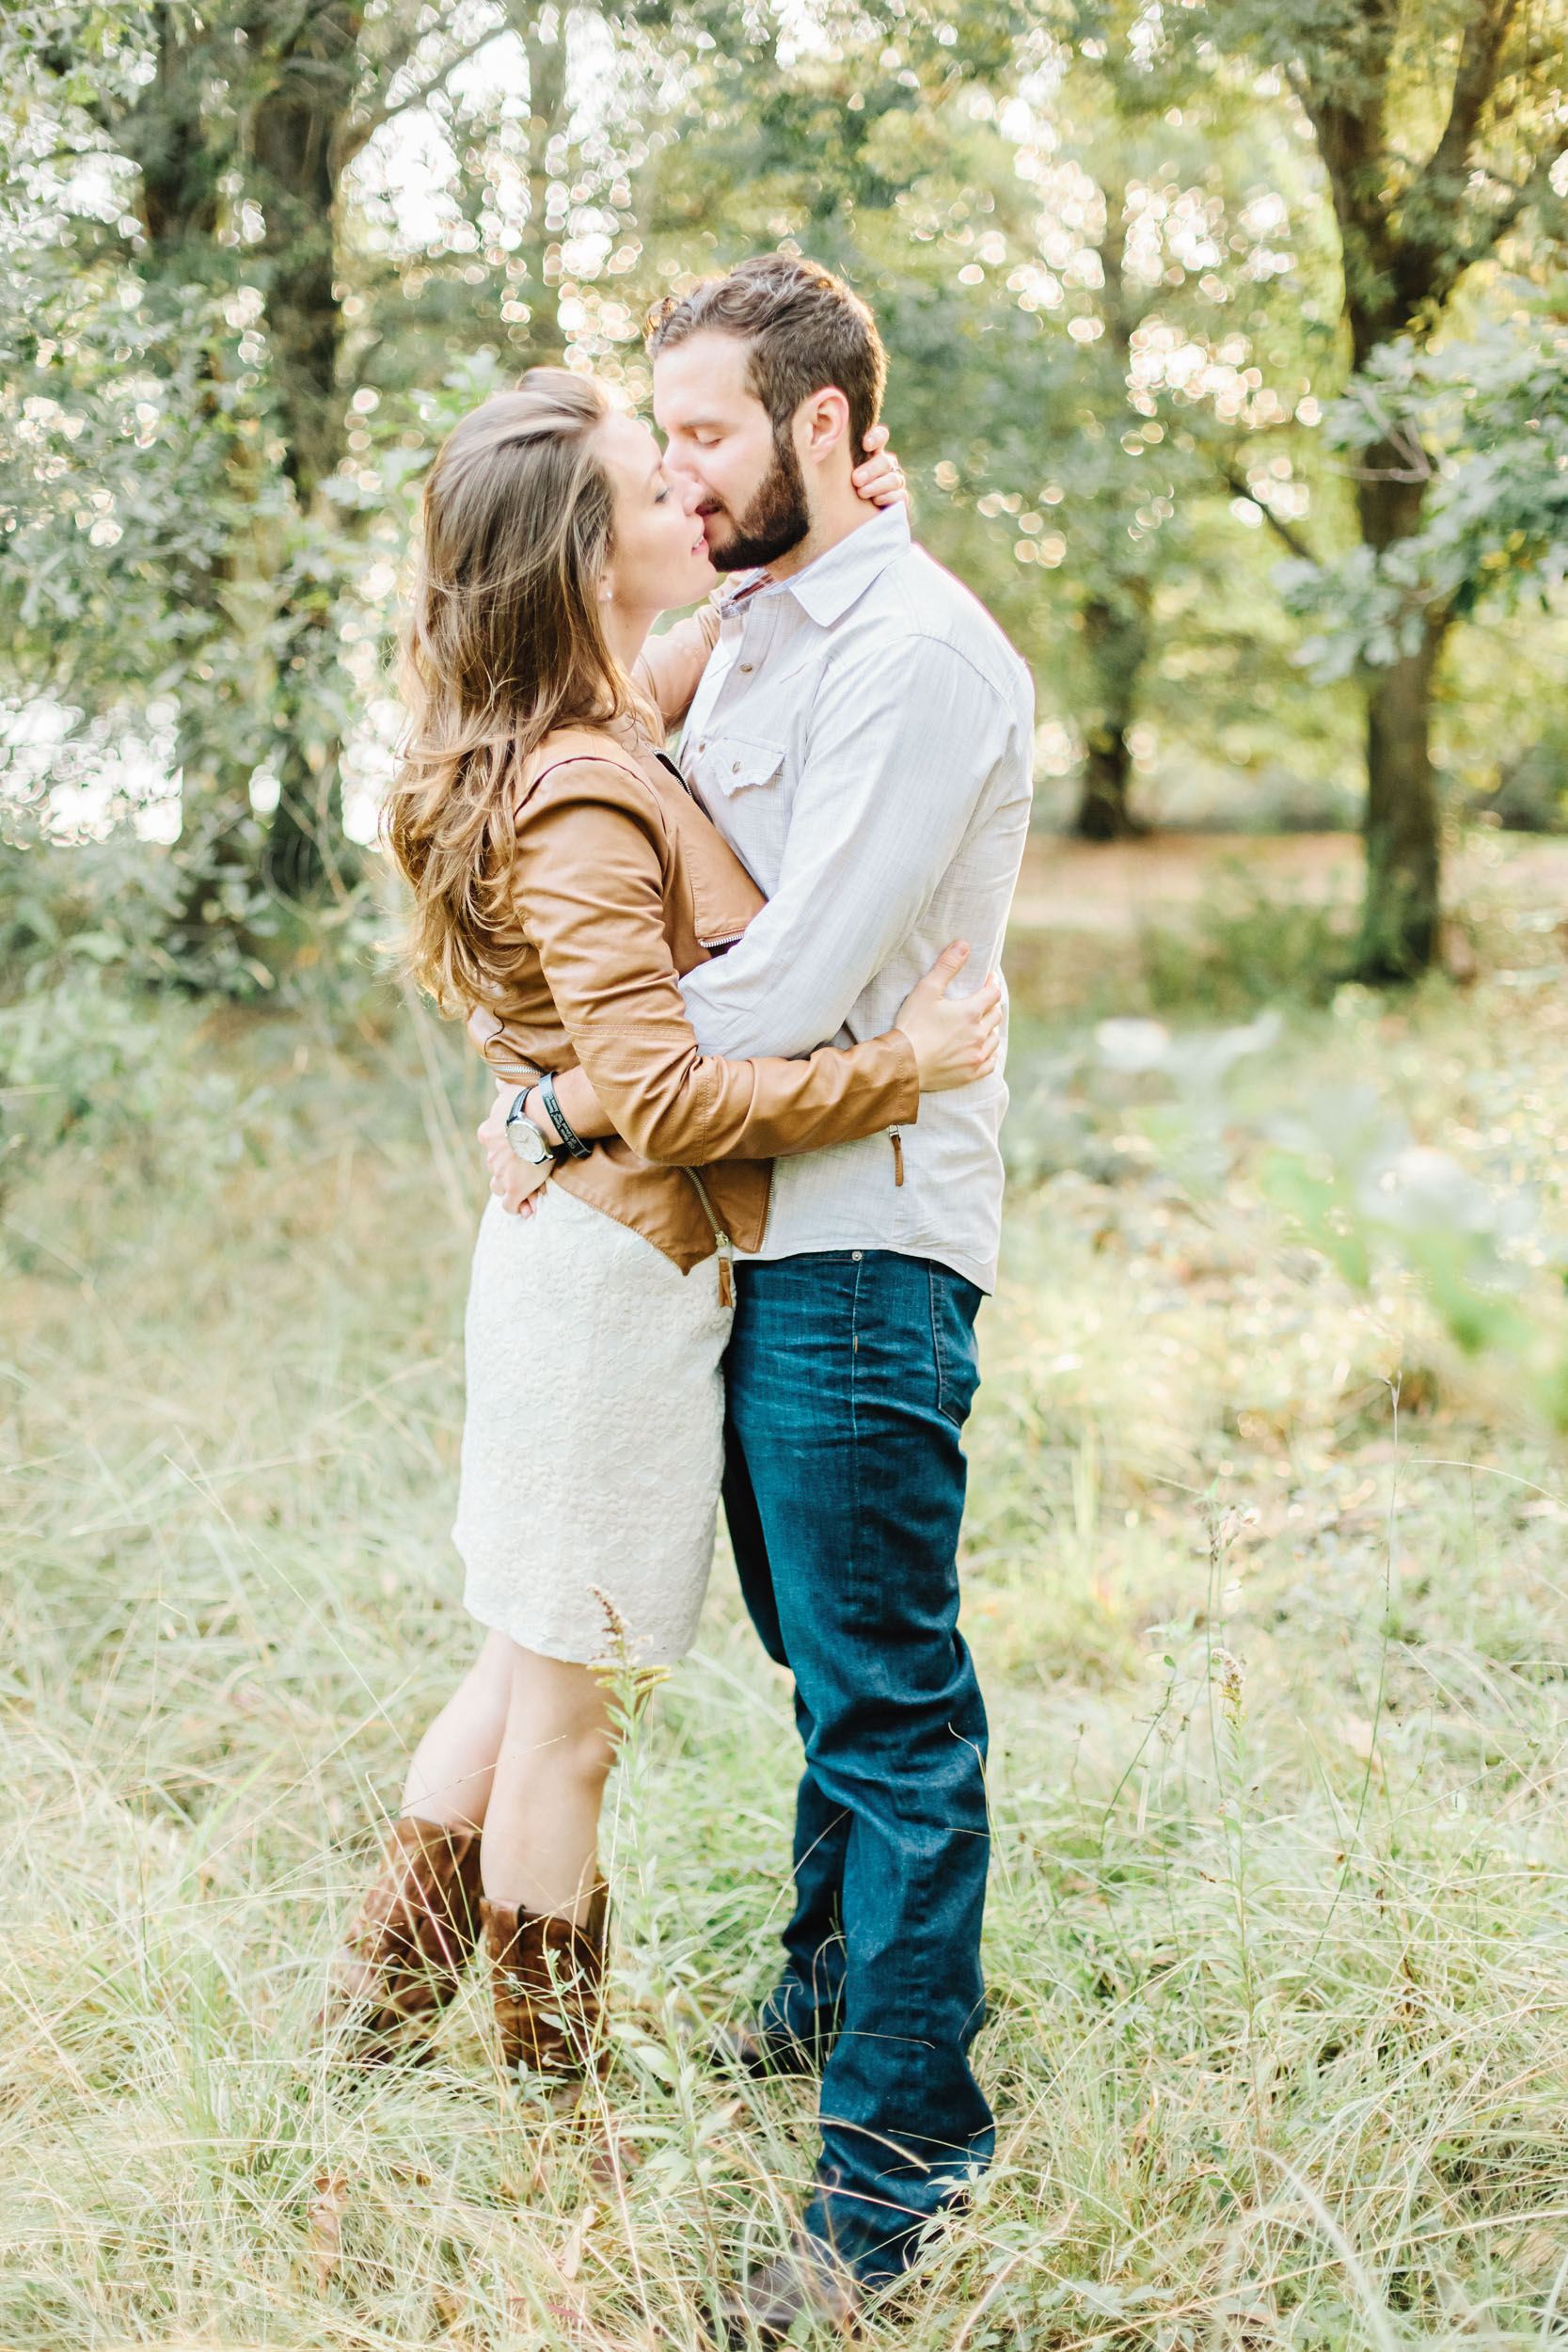 Cassie Schott Photography_Houston and Chicago Portrait Photographer_Engagement Sessions and Anniversary Sessions_32.jpg